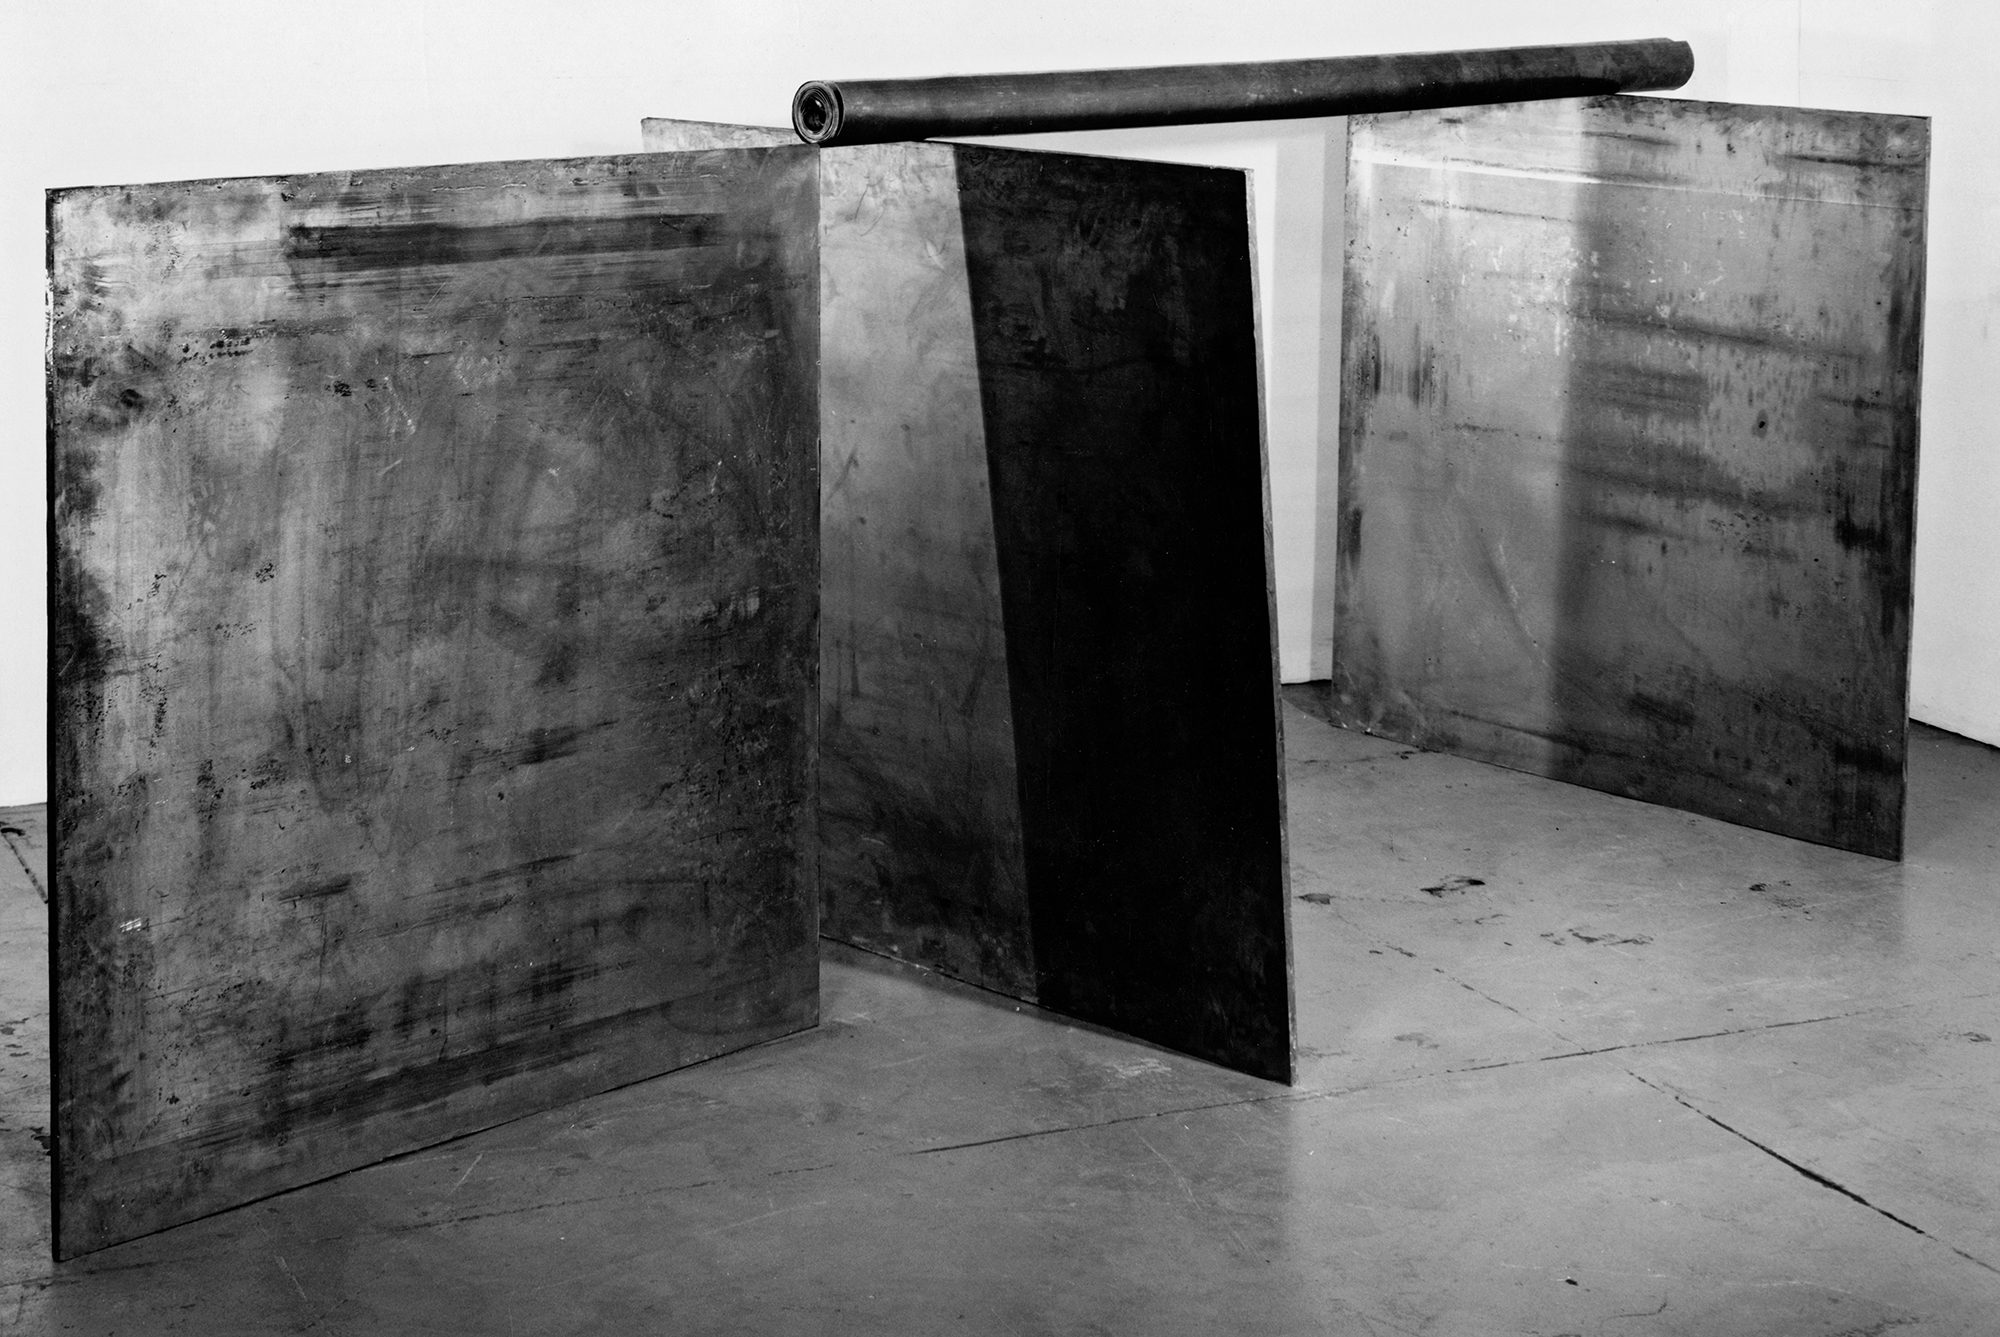 Richard Serra (American, b. 1939), 1-1-1, 1969. Lead, three plates: each: 48 x 48 x 1 in., pole: 84 in. long, 4 in. diameter. Photo by Peter Moore. Collection of the artist.